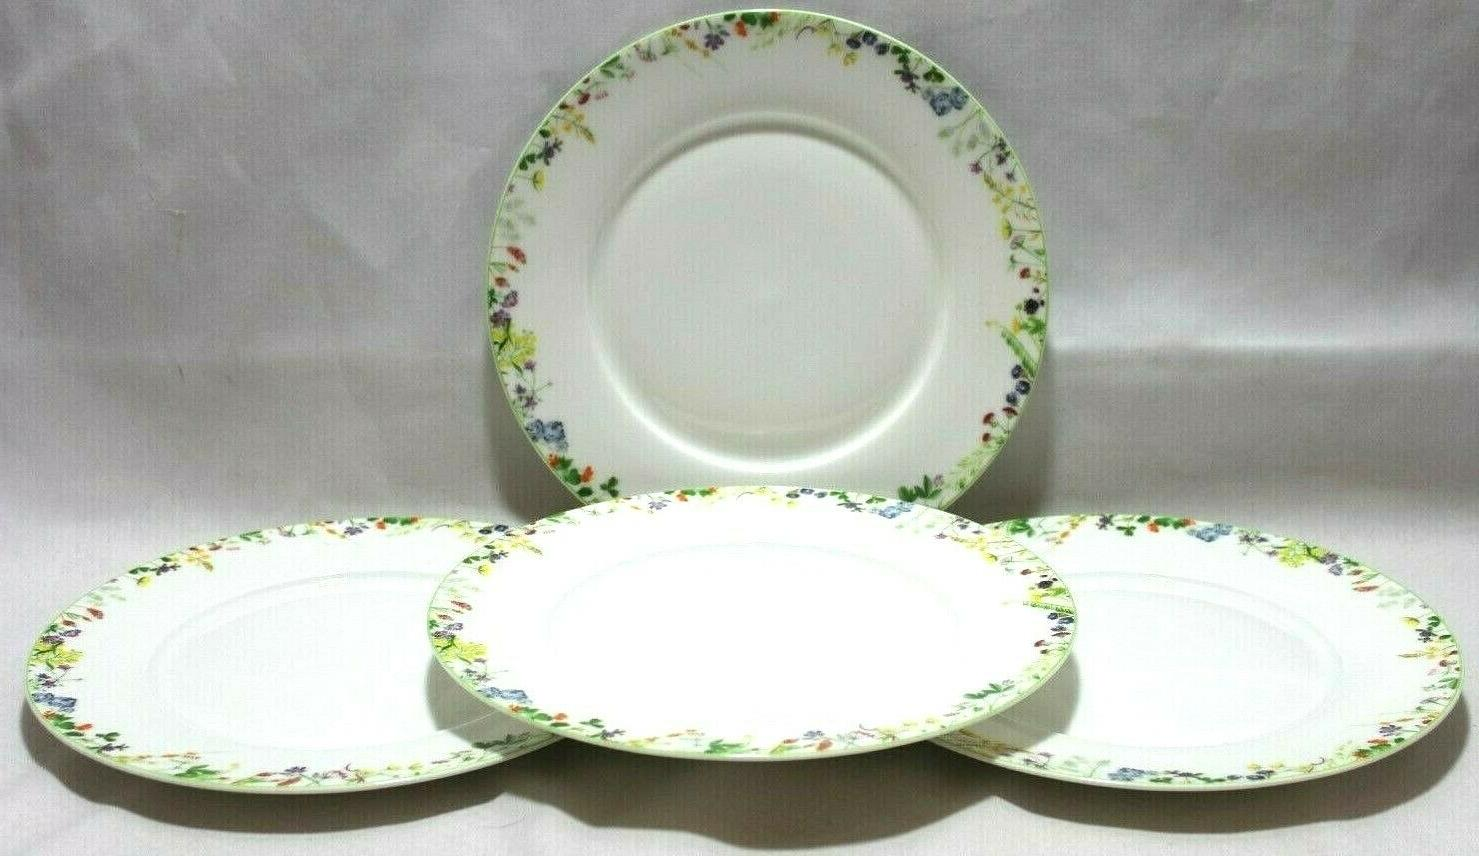 Mikasa Garden China Multi-Color Floral Plates /4